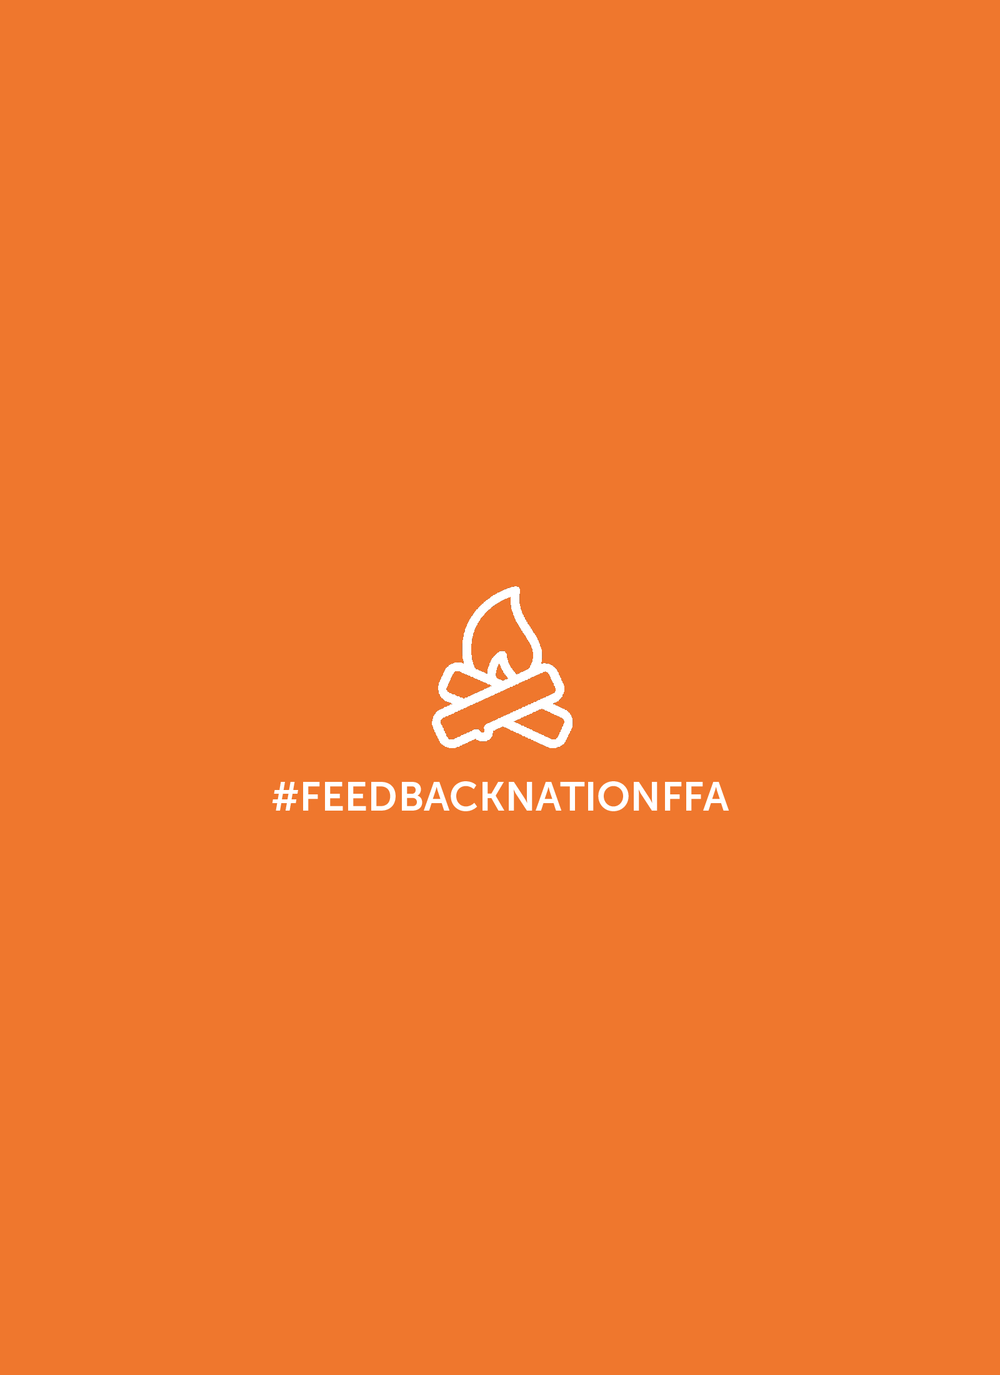 Good evening everyone! We'd just like to announce that we're reopening our #feedbacknationFFA for the month of February! You guys did such an amazing job on the collaborations that we're excited to see what you guys are able to come up with this month!      Rules for #feedbacknationFFA  1. [Edit] someone else's photo from link provided  2. [Post] the photo and tag the User/@feedbacknation/#feedbacknationFFA in your post  3. [Submit] your own unedited photo (name it @username) to the #feedbacknationFFA at (feedbacknation.net)  4. Have fun!     EDIT:  https://www.dropbox.com/sh/dst86q9towaolps/AAAPjO3iEszHkoI5OE-6dTRLa?dl=0   SUBMIT:  https://www.dropbox.com/request/OzJ0FeYbkLH6vJvWhrvf